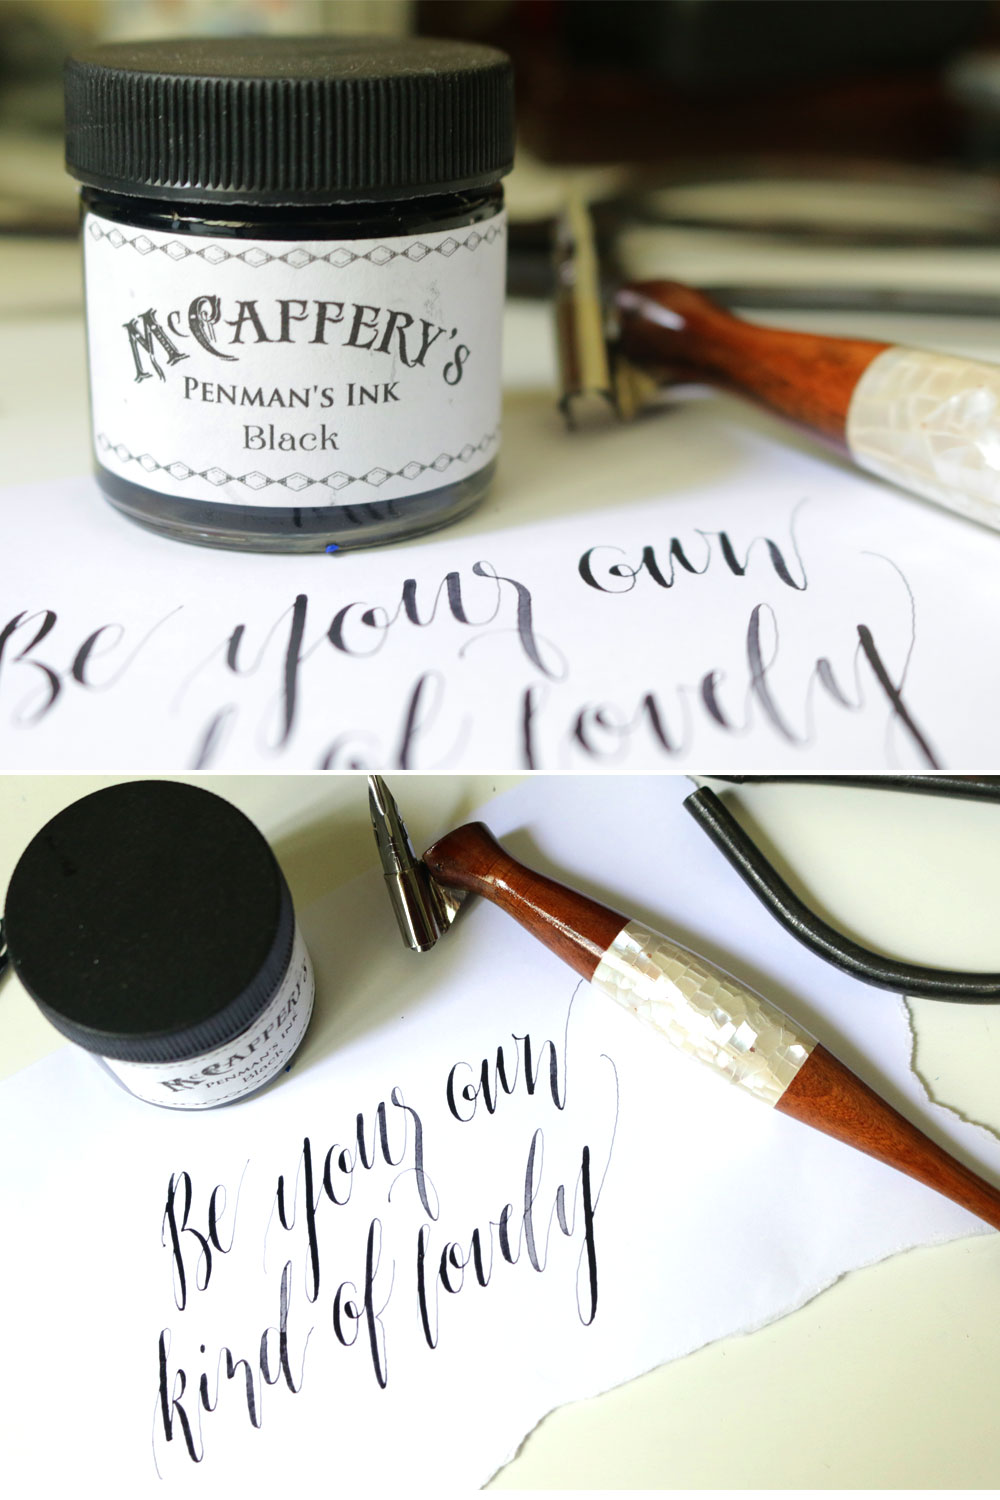 McCaffery's Ink Review via Happy Hands Project